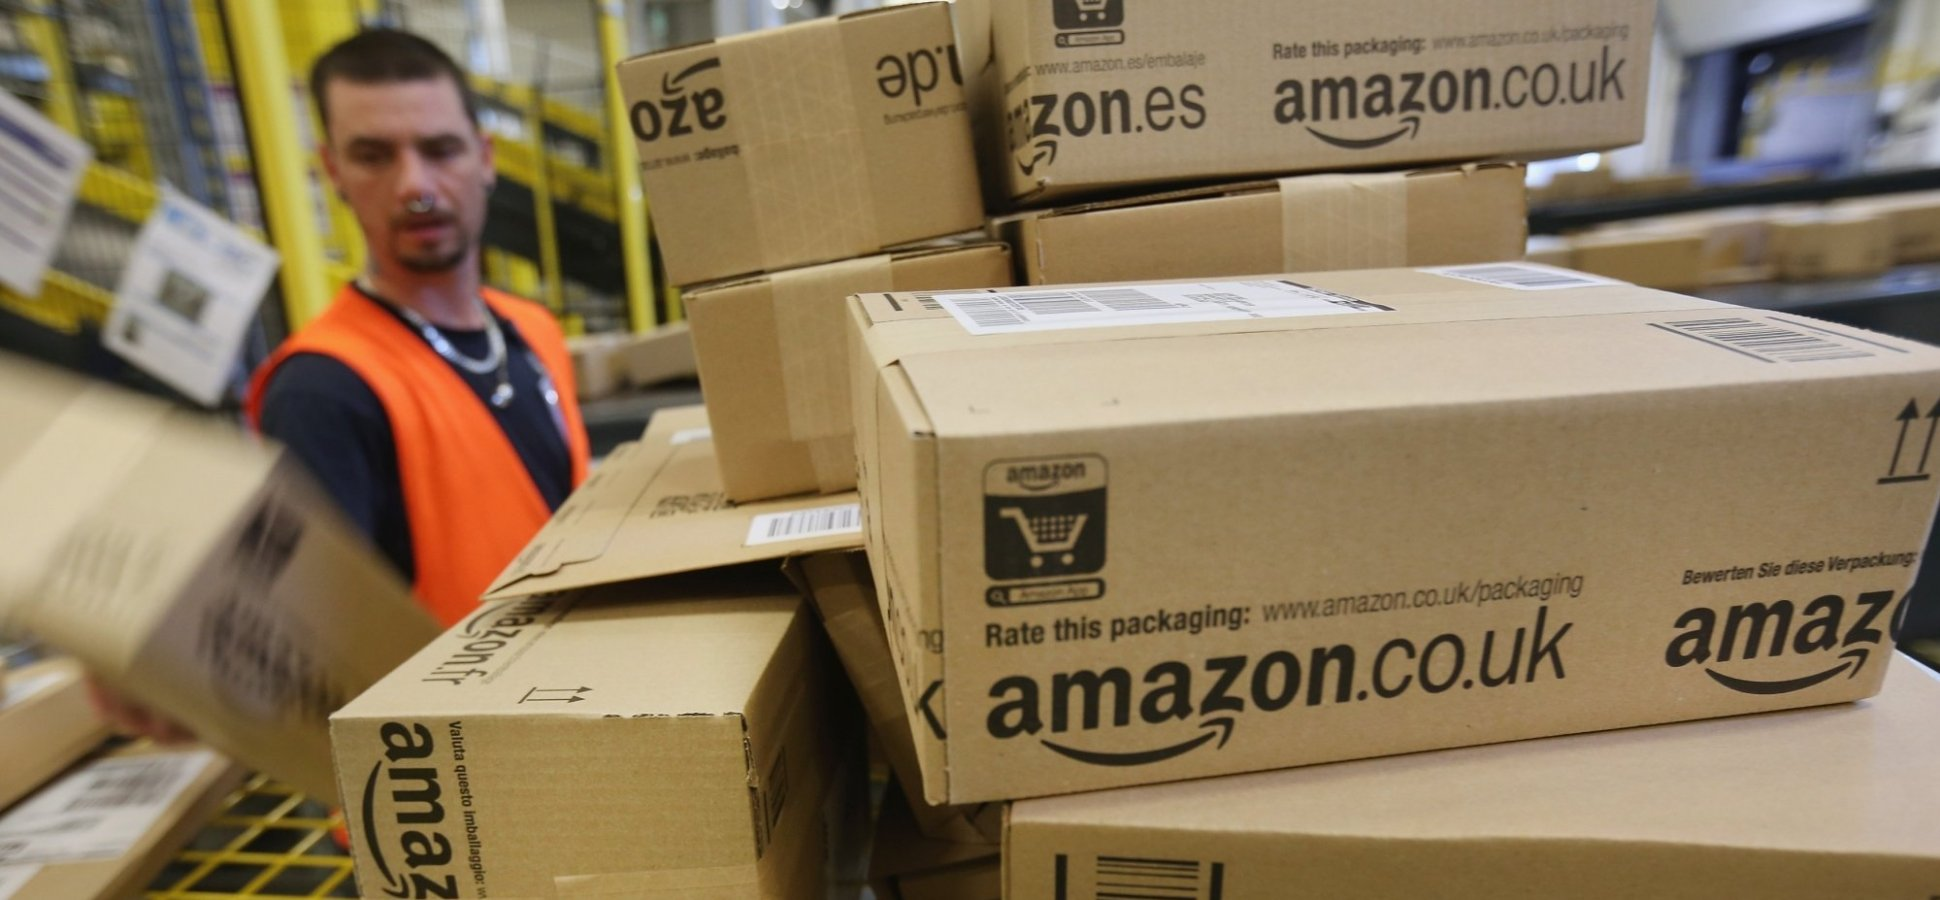 What's It Really Like Working for Amazon? A Survey of 241 Warehouse Employees Says It's Toxic. One Called It 'Worse Than Prison'